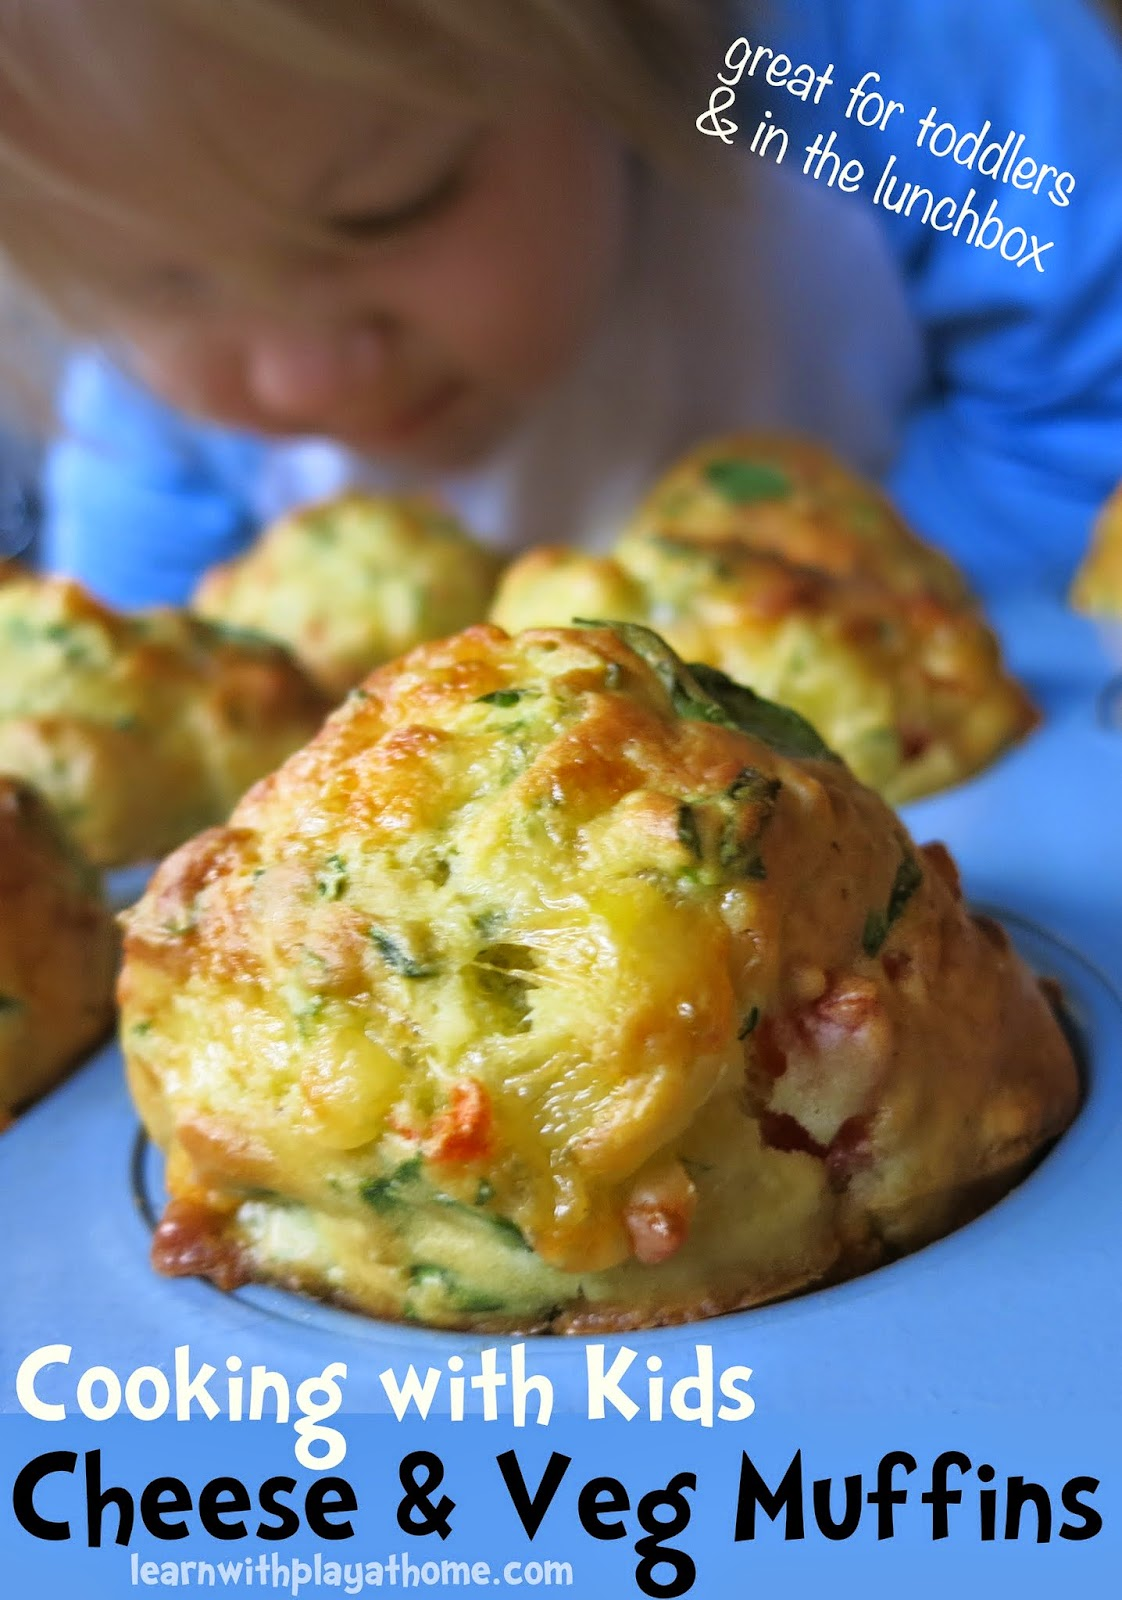 Healthy Toddler Lunch Ideas, Recipes your child will love, Healthy Toddler Meals, Healthy foods that are easy to make and delicious, Your child will love eating healthy meals. Kid Recipes #foodforkids #snacksforkids #toddlerrecipes #toddlermeals